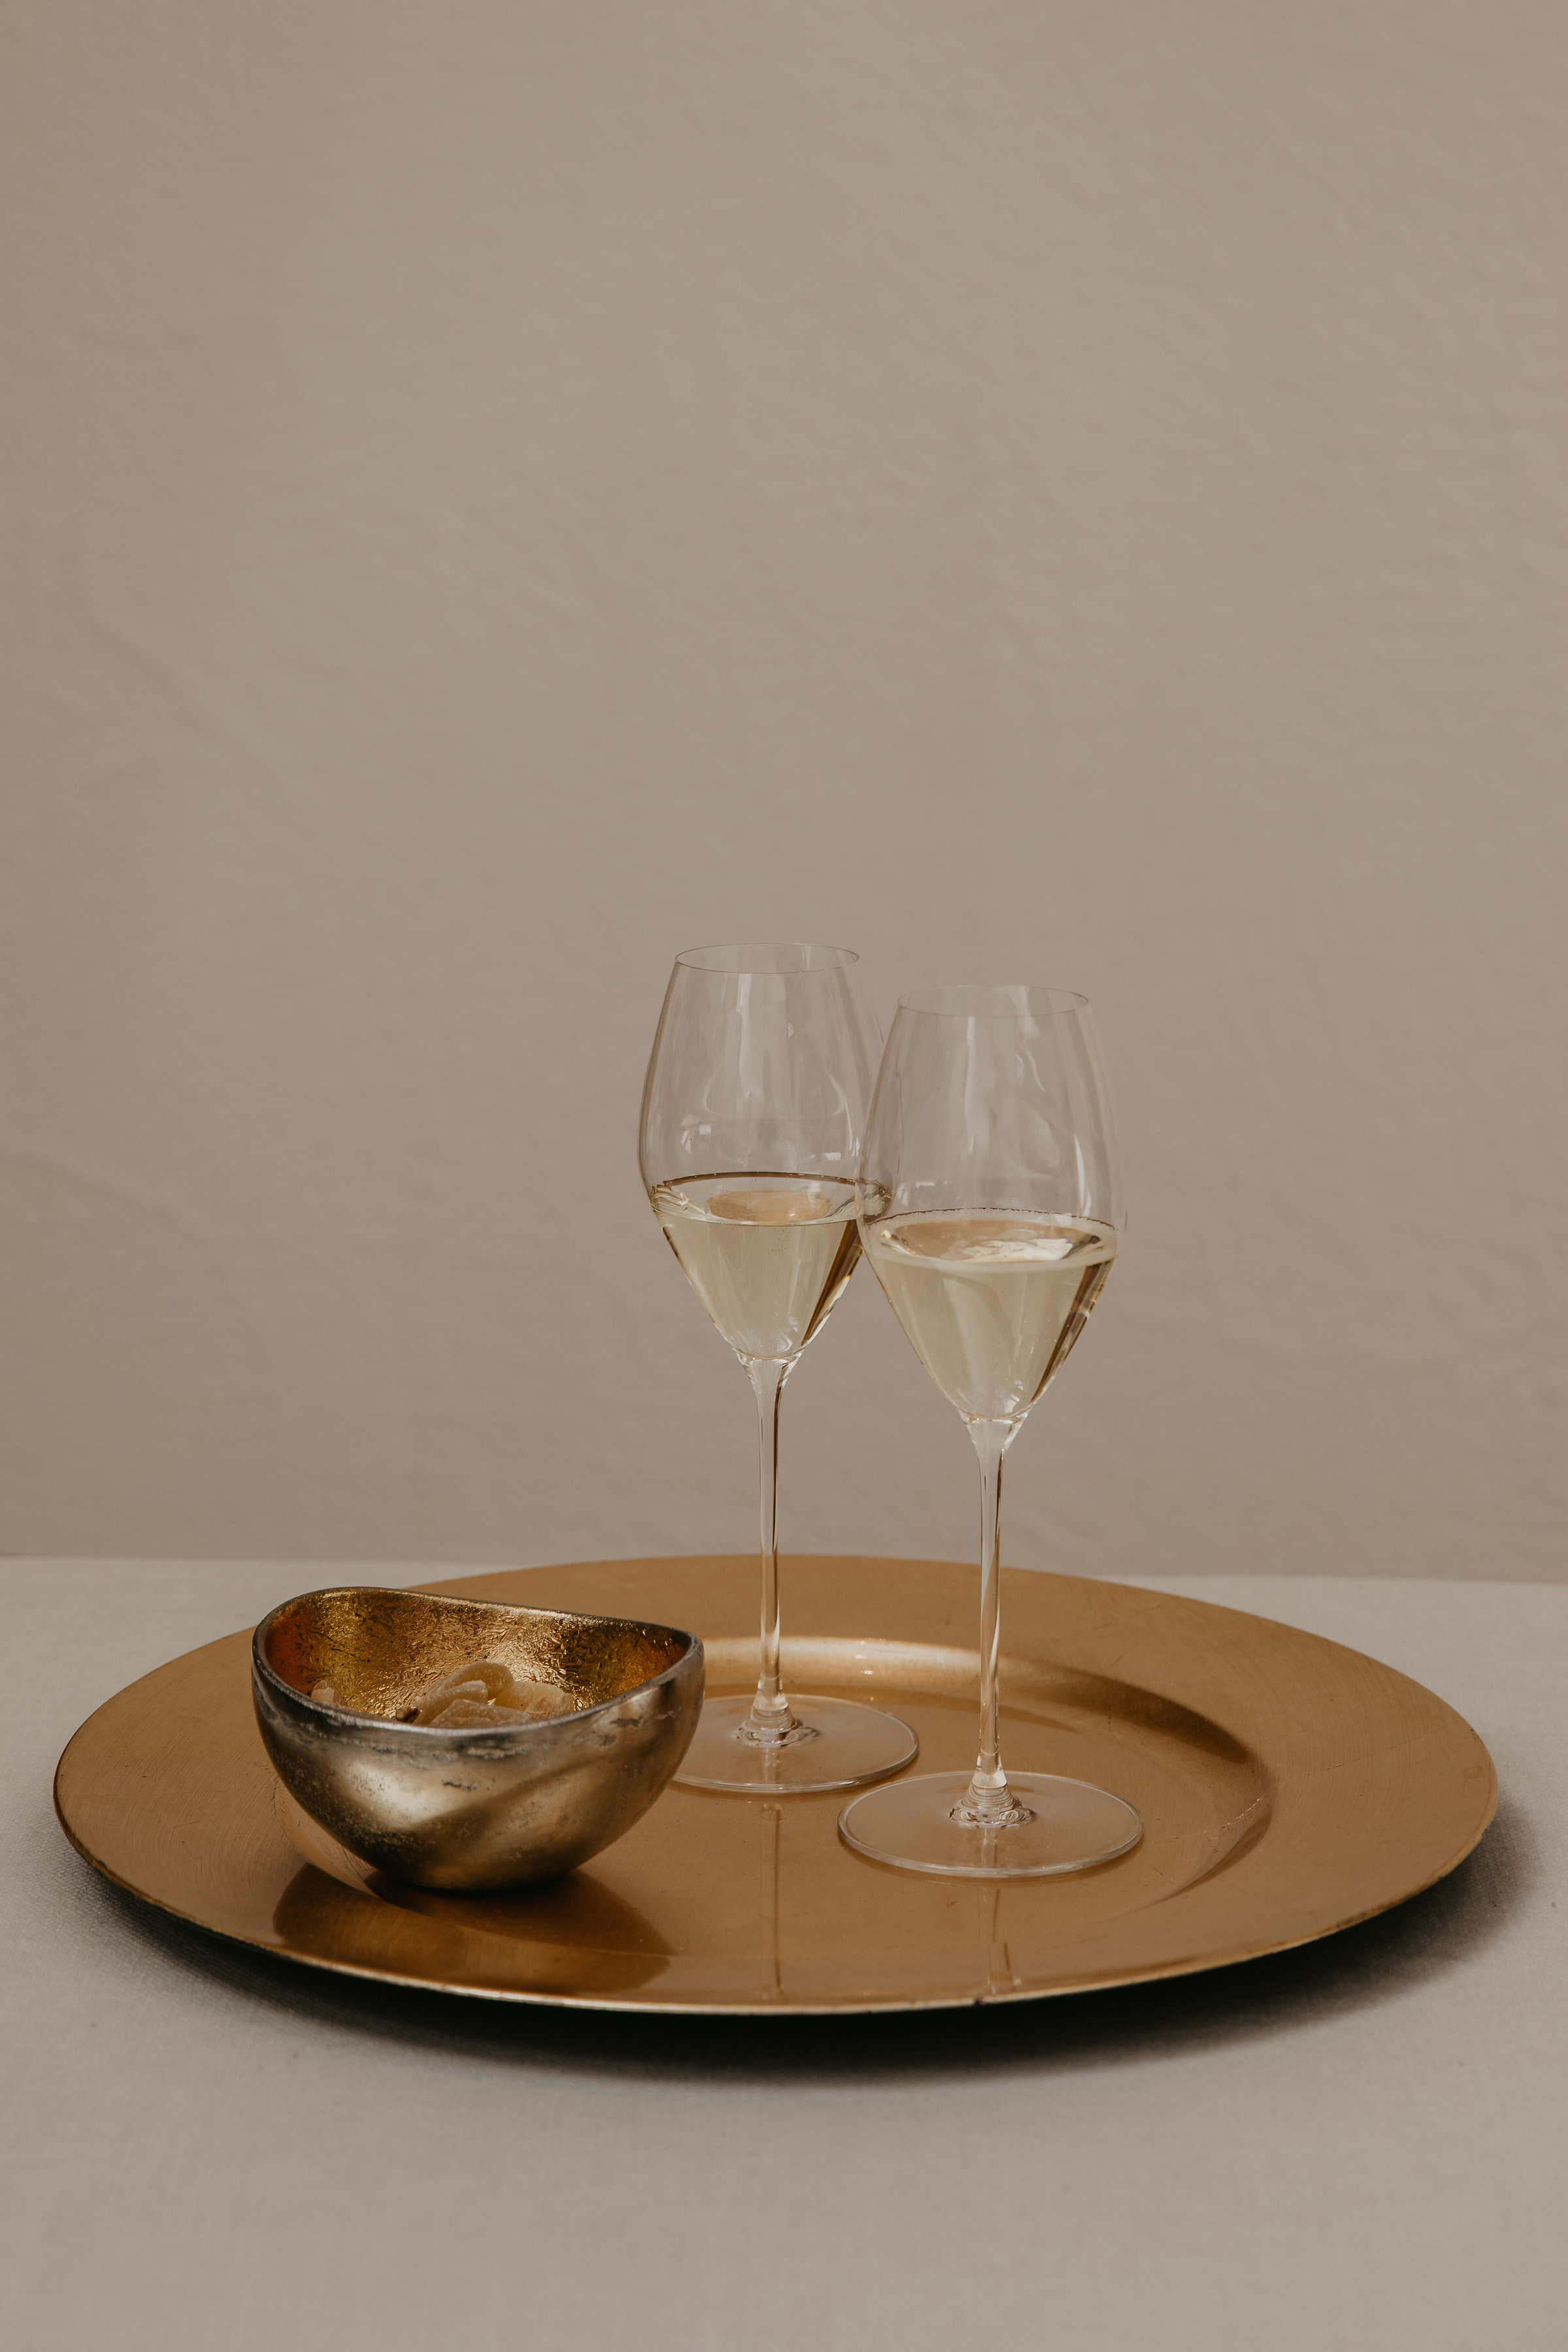 Riedel x CheeseBB Present: Champagne & Cheese Tasting Workshop - ART FOOD - K11